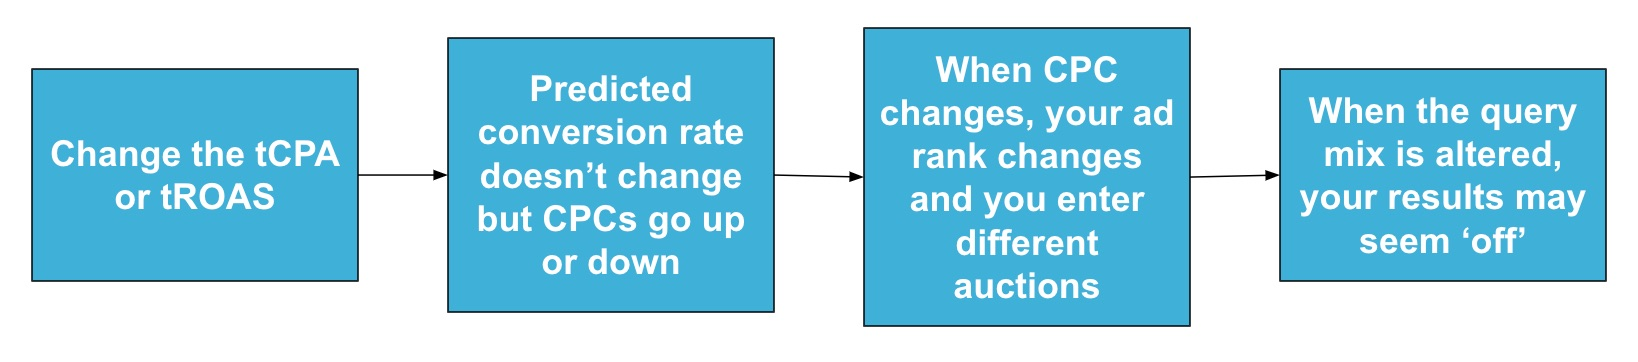 change in target changes query mix